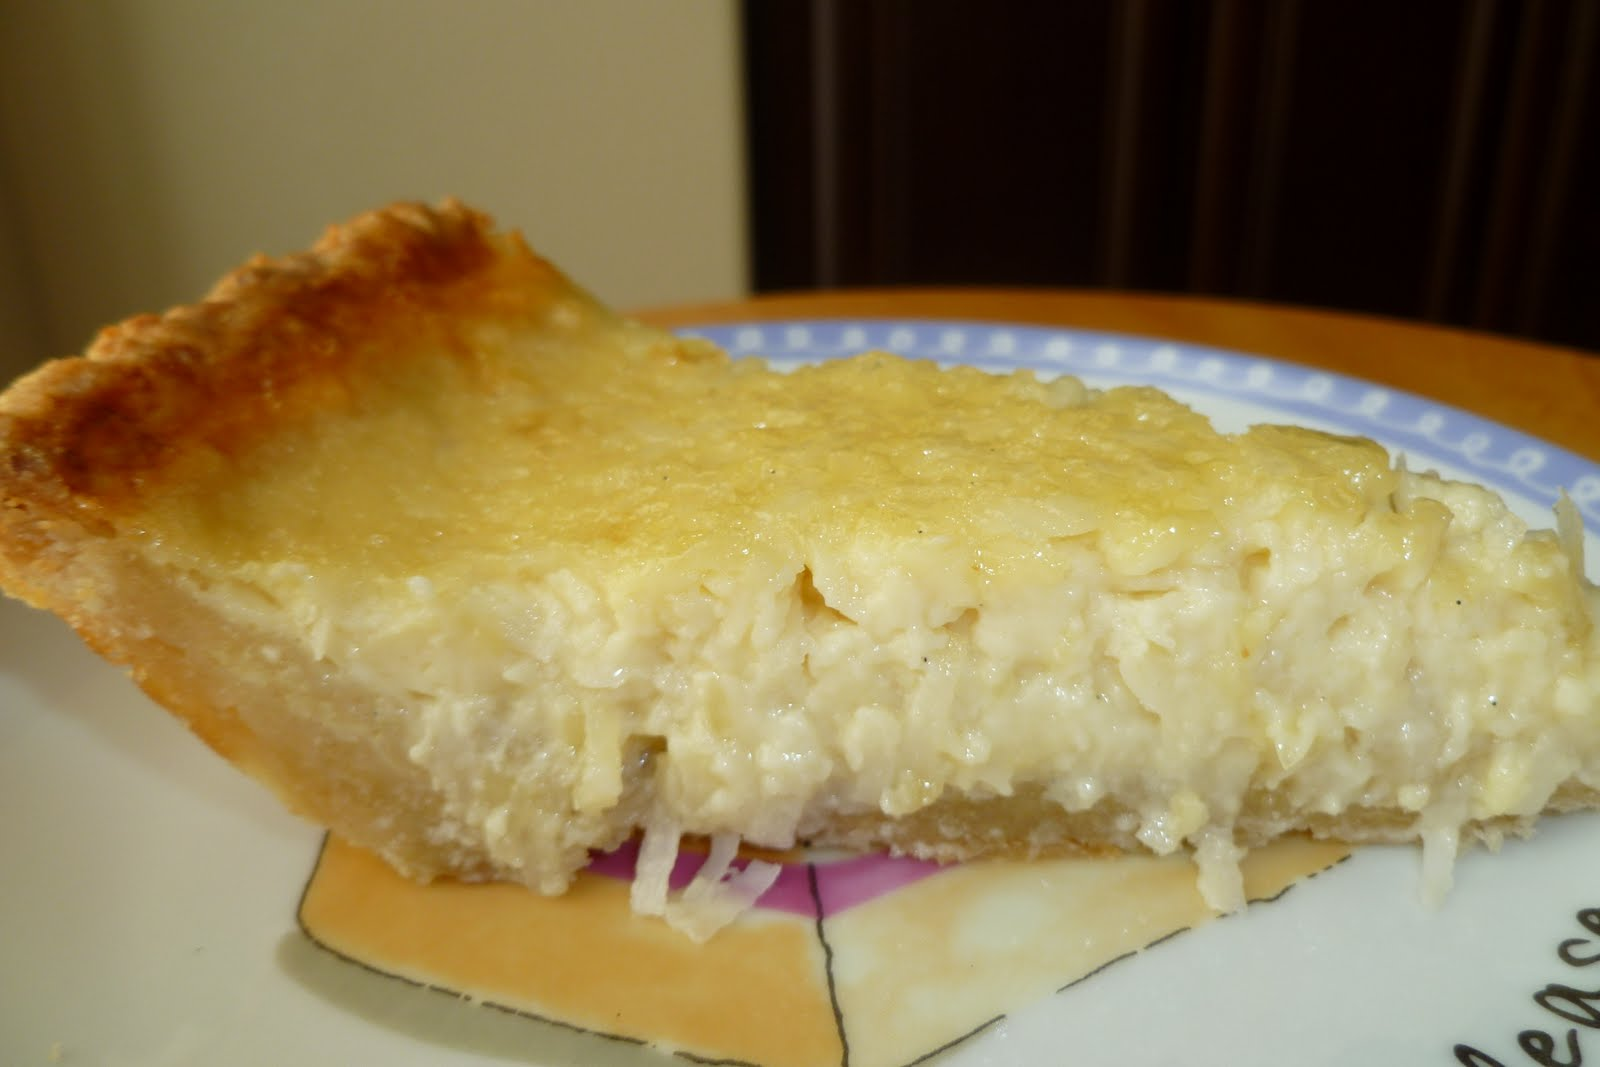 The Pastry Chef's Baking: Flaky Pie Crust & Coconut Custard Pie